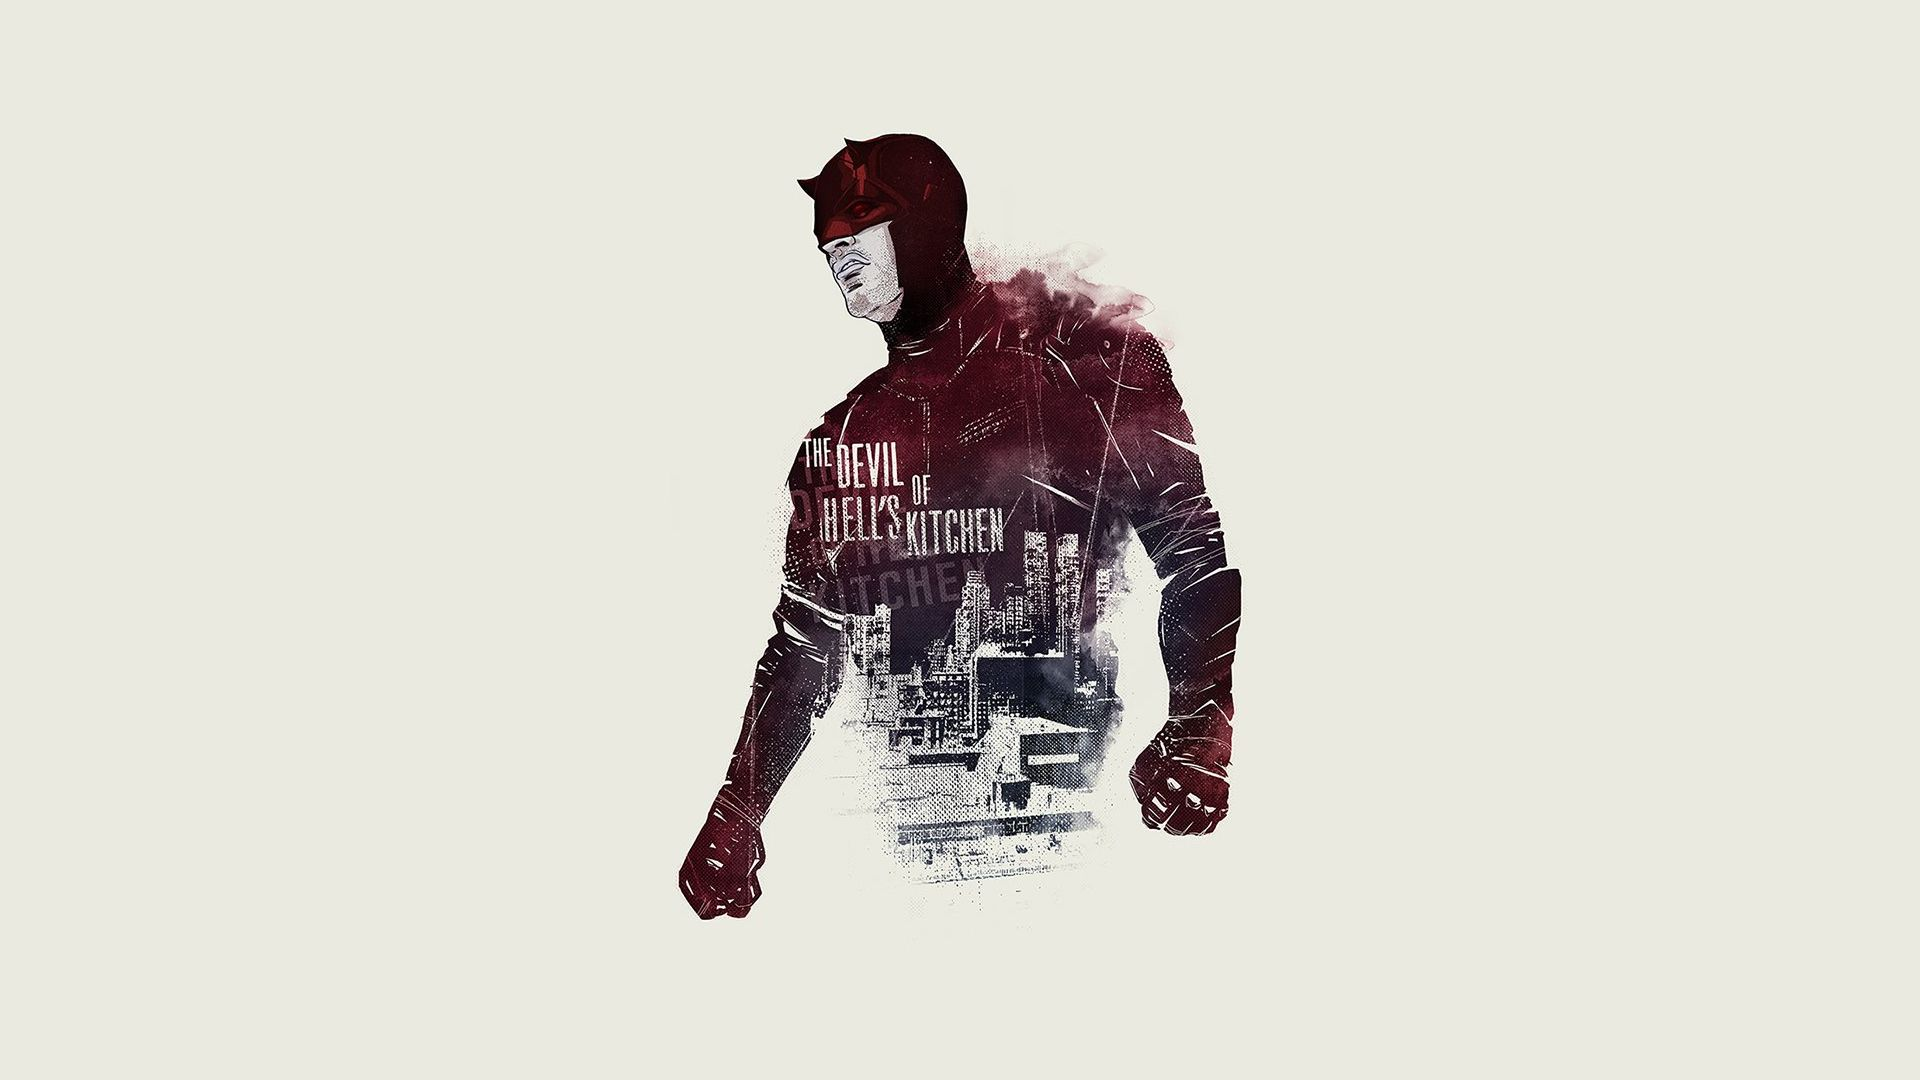 Daredevil poster turned wallpaper [1920x1080] Need iPhone